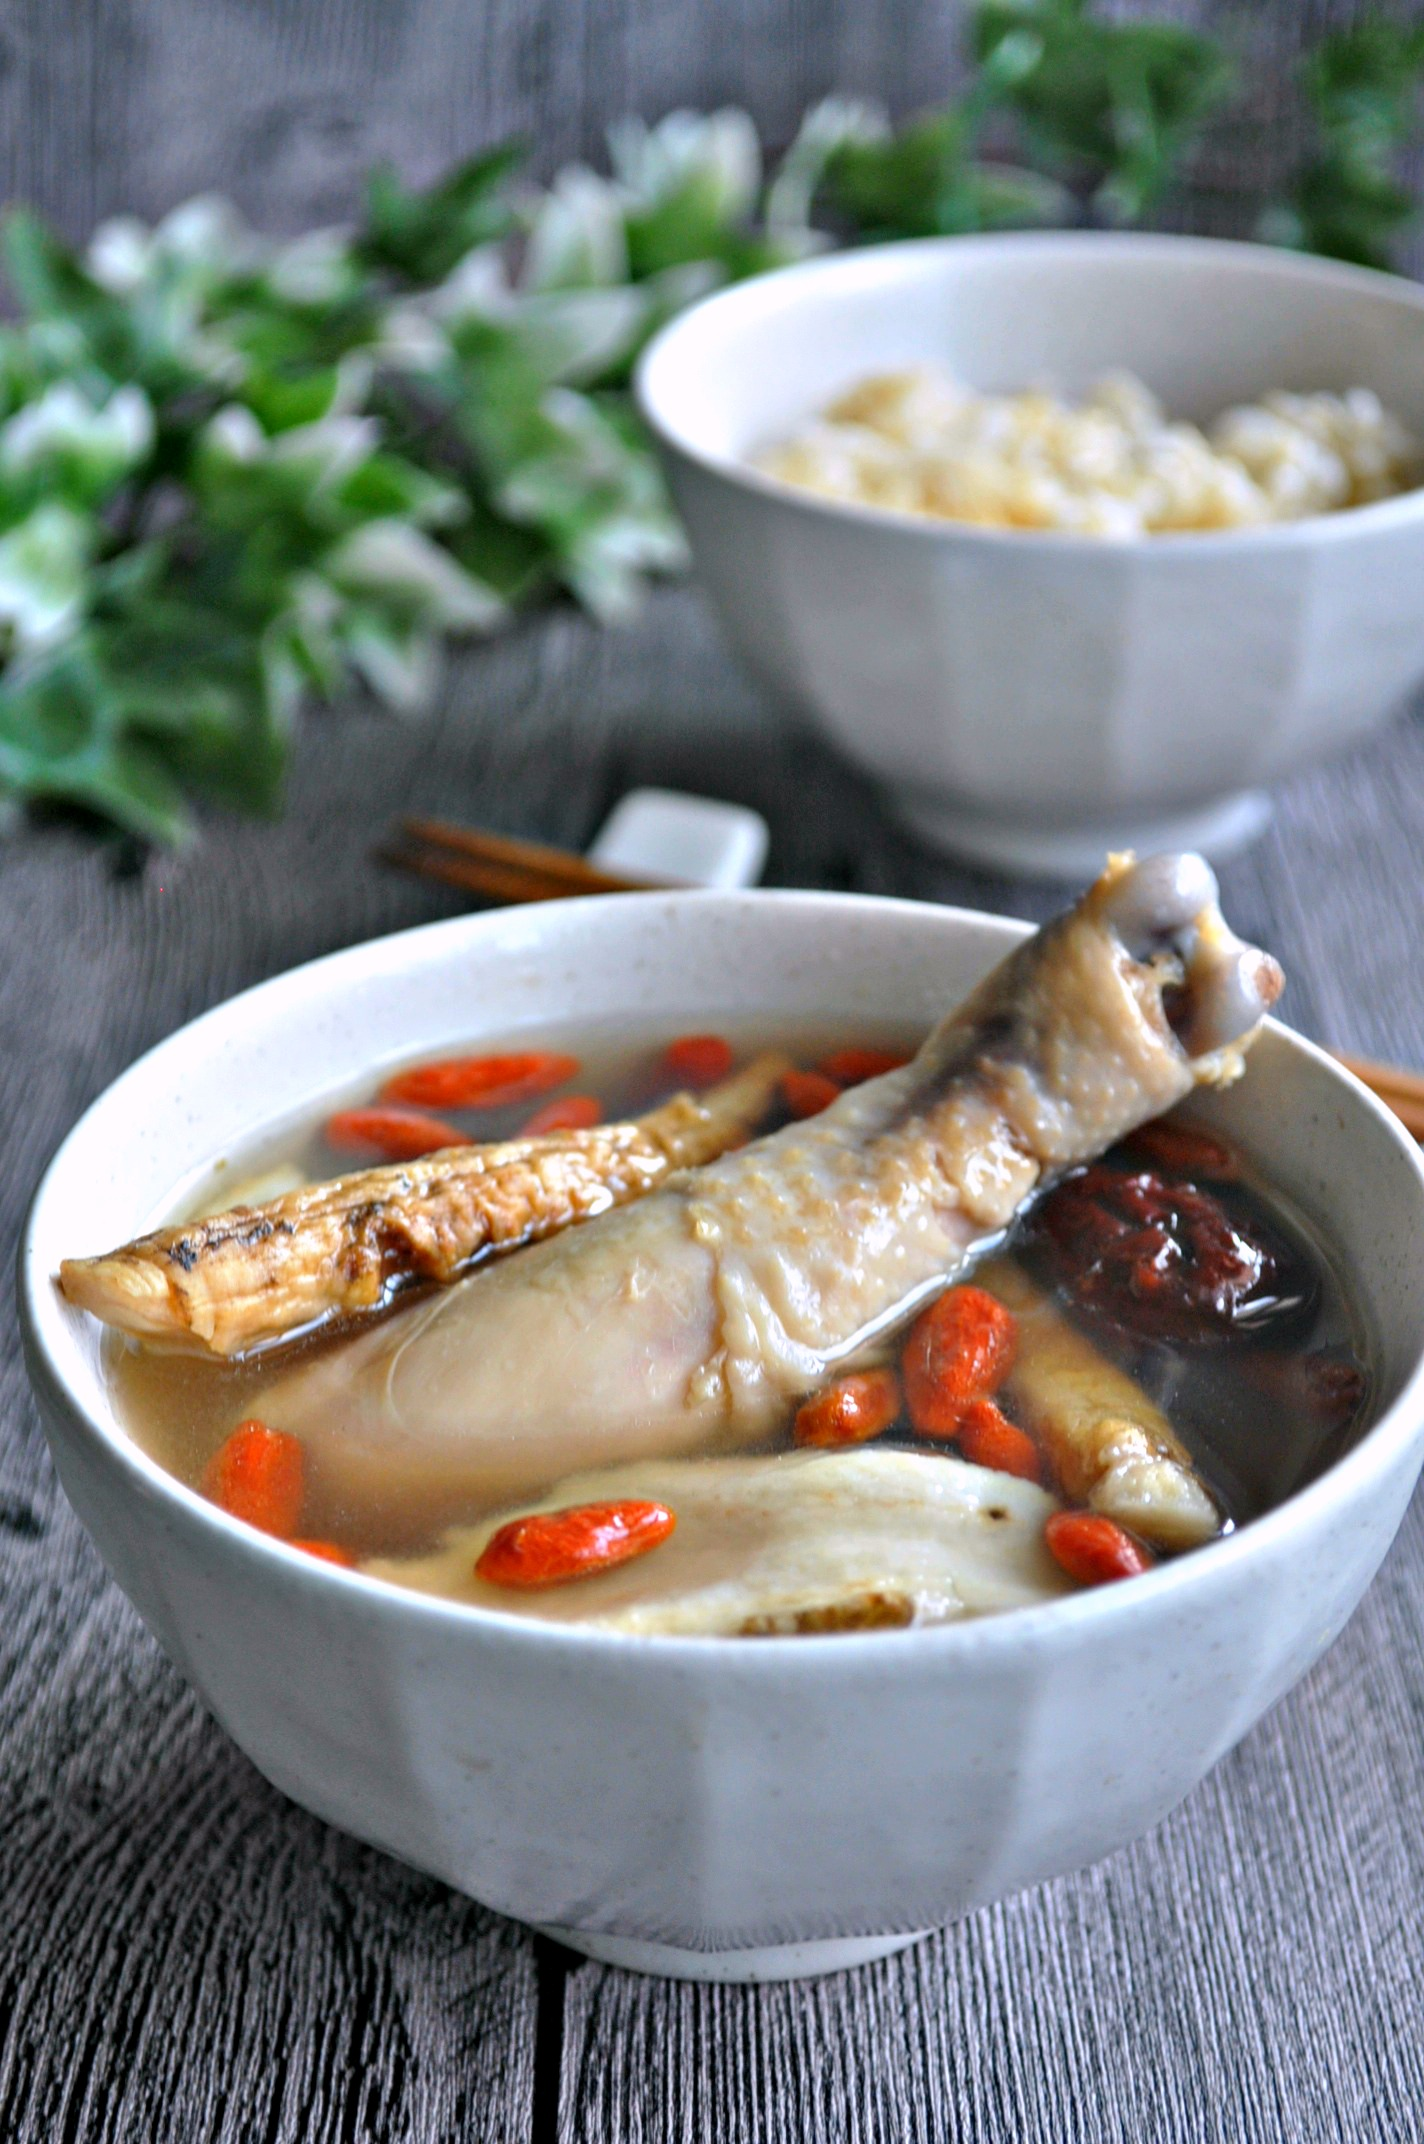 Chinese Herbal Chicken Soup 中式药材鸡汤